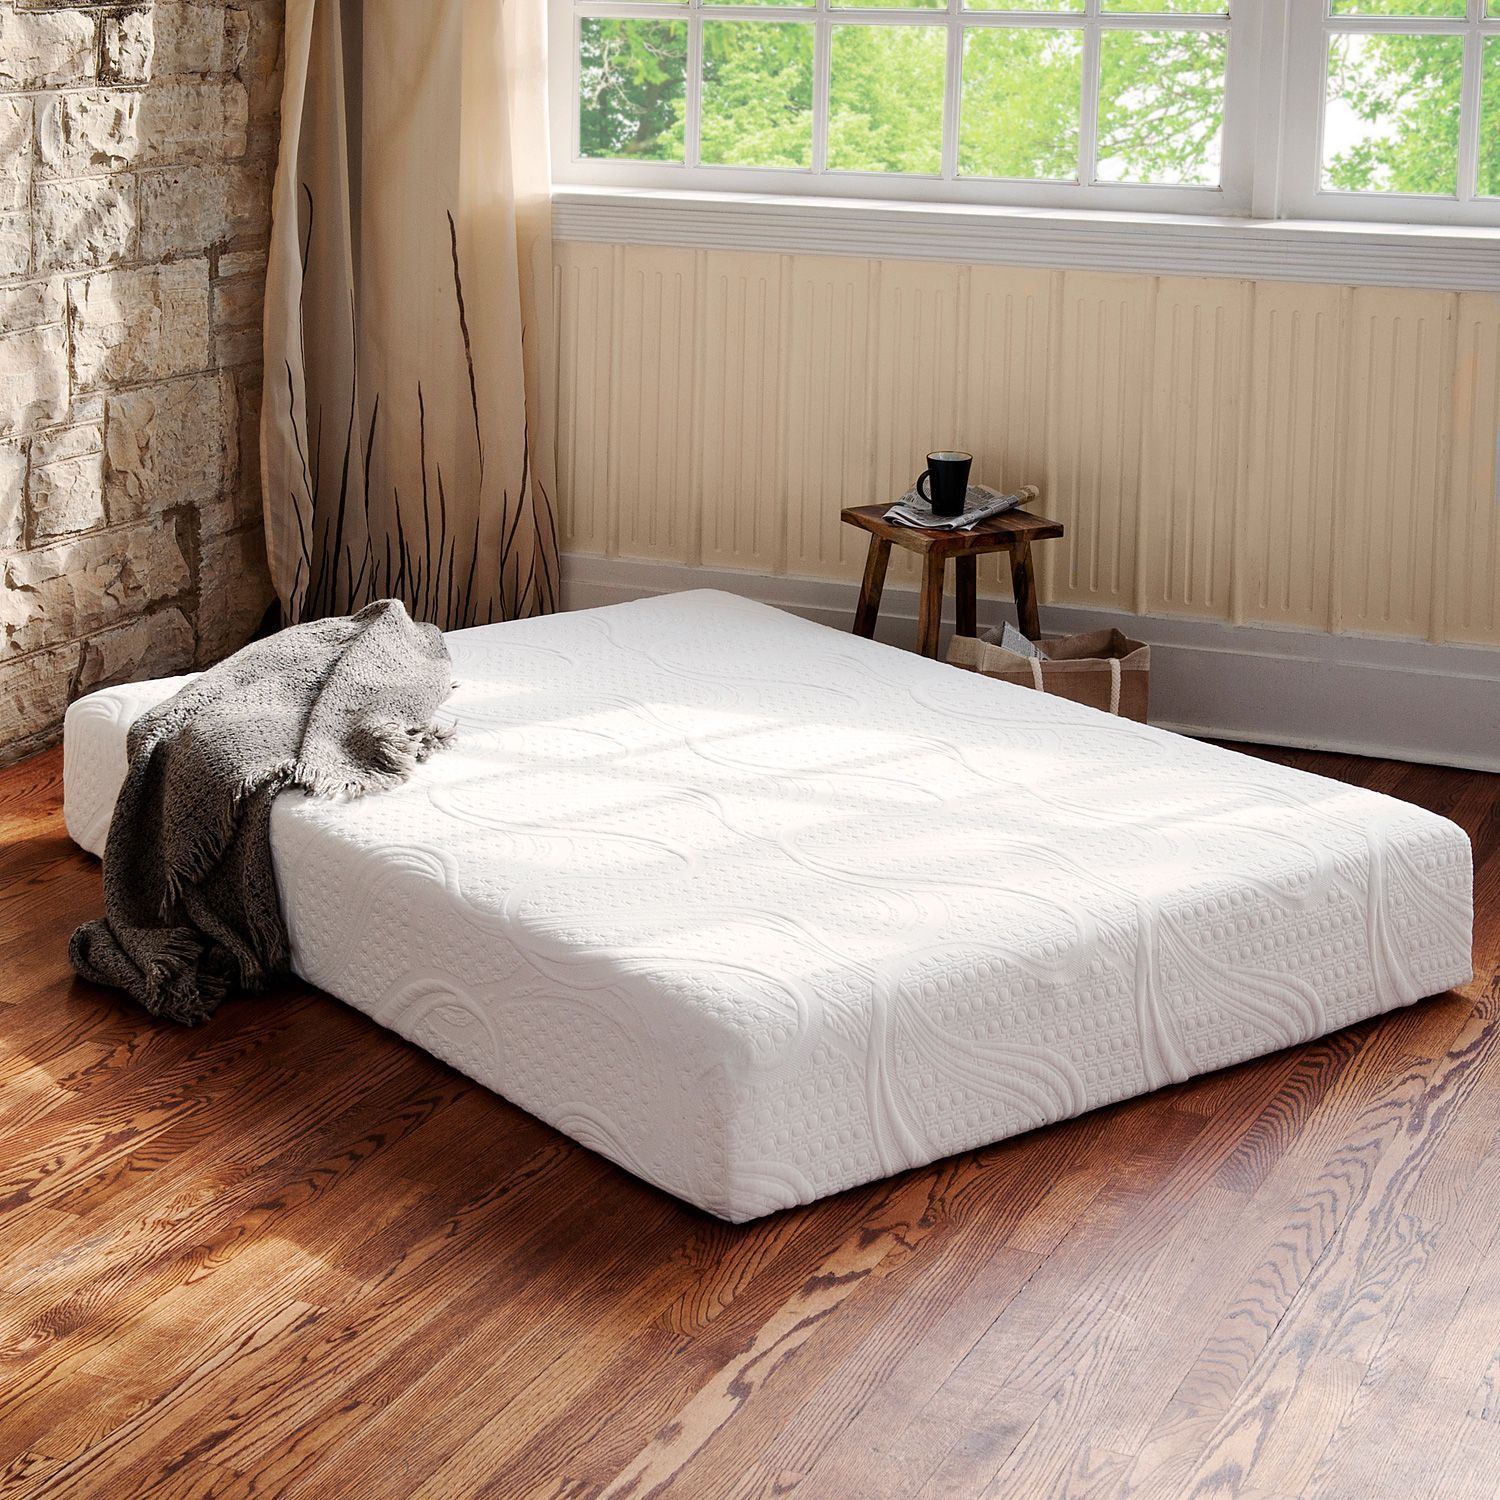 night therapy memory foam 8 inch pressure relief mattress various sizes sams club this would be great for a bunk bed - Sams Club Mattress Sale